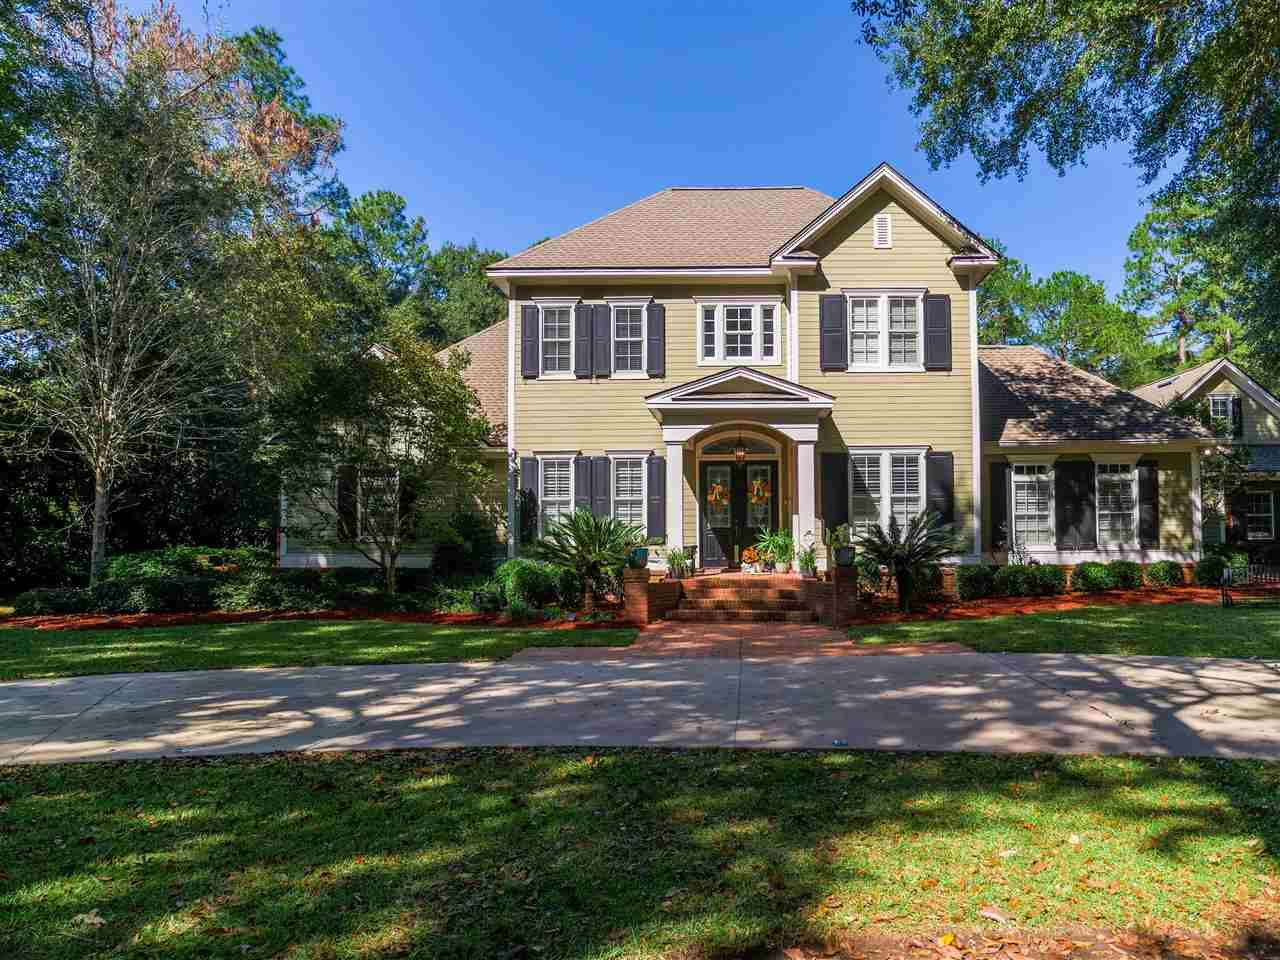 7392 Ox Bow Circle, Tallahassee, FL 32312 - MLS#: 325242